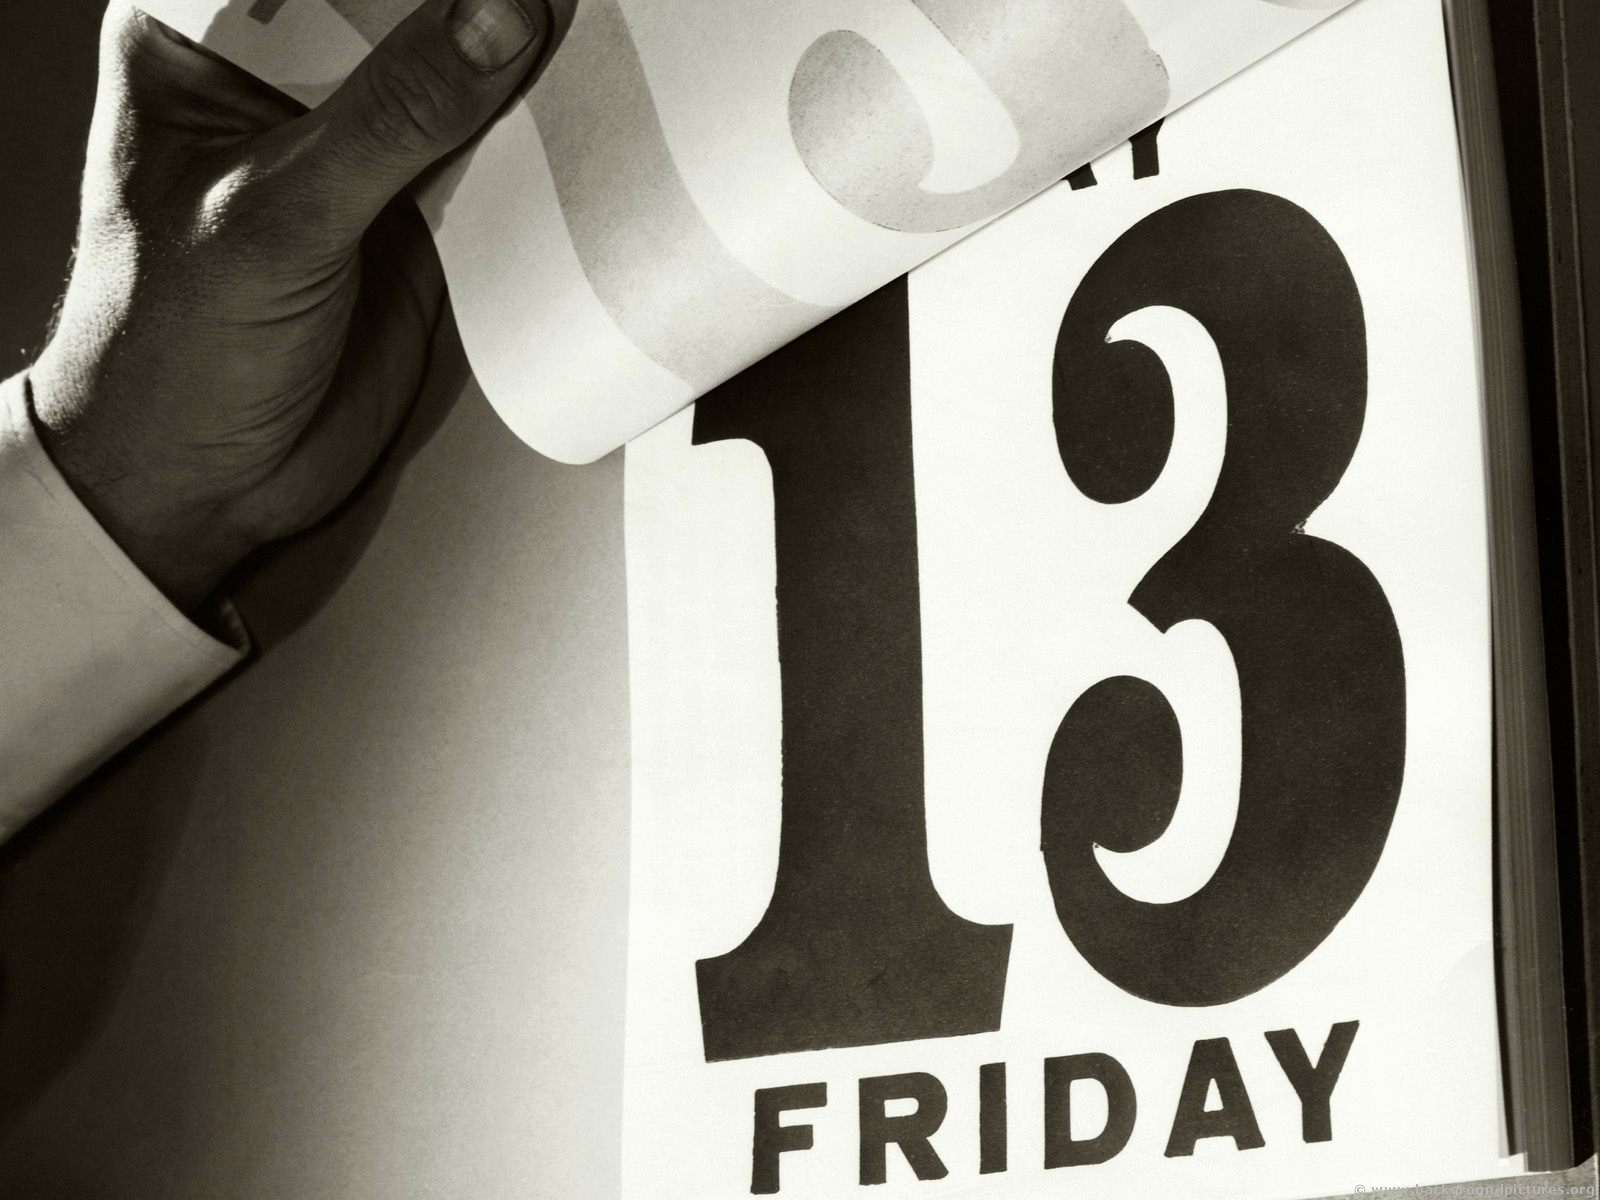 Friday the 13th – where did it come from? | Samui Times